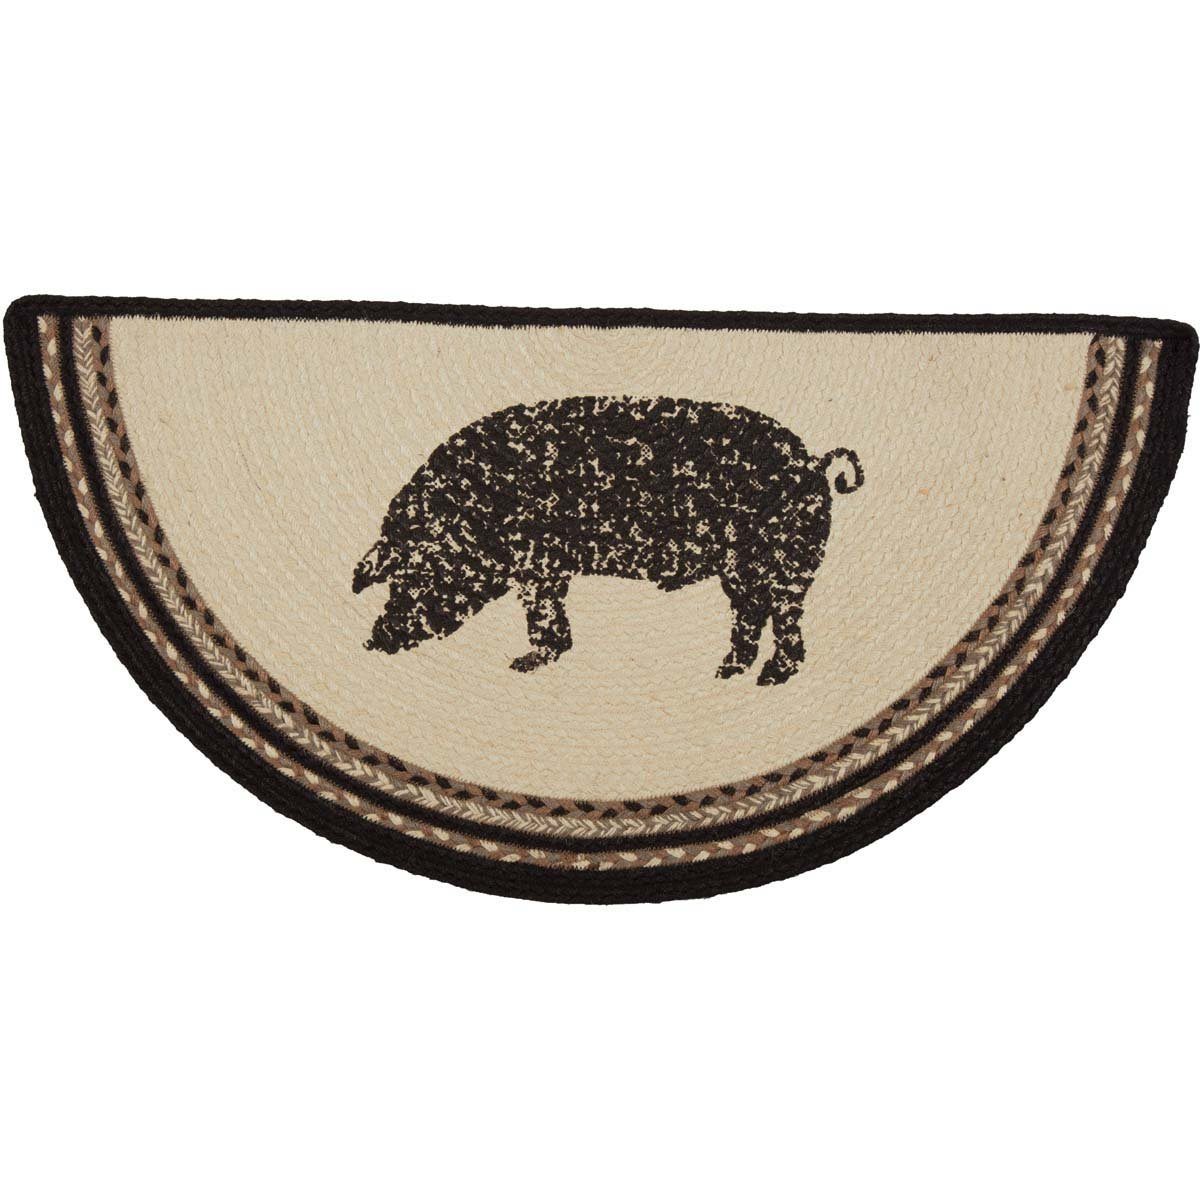 VHC Brands 38042 Farmhouse Flooring Miller Farm Charcoal Pig Jute Stenciled Nature Print Half Circle Rug, One Size, Bleached White